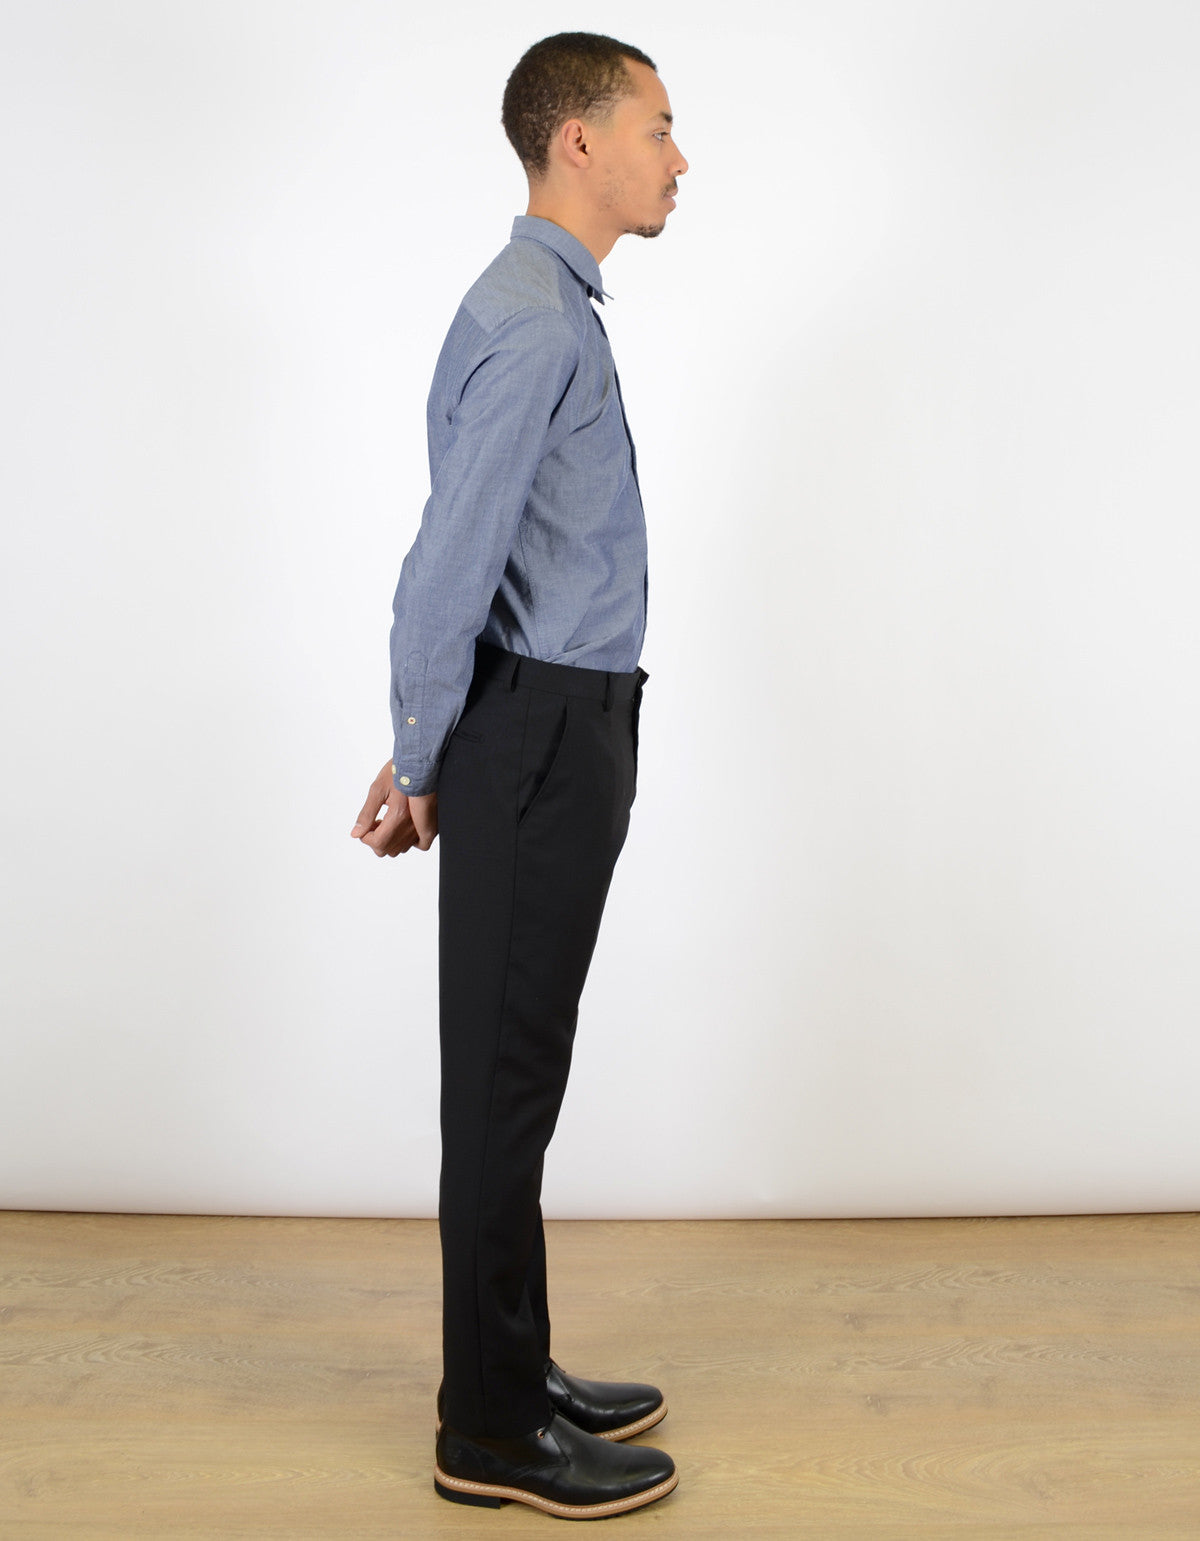 Selected Homme One Mylo Trouser Black - Still Life - 4